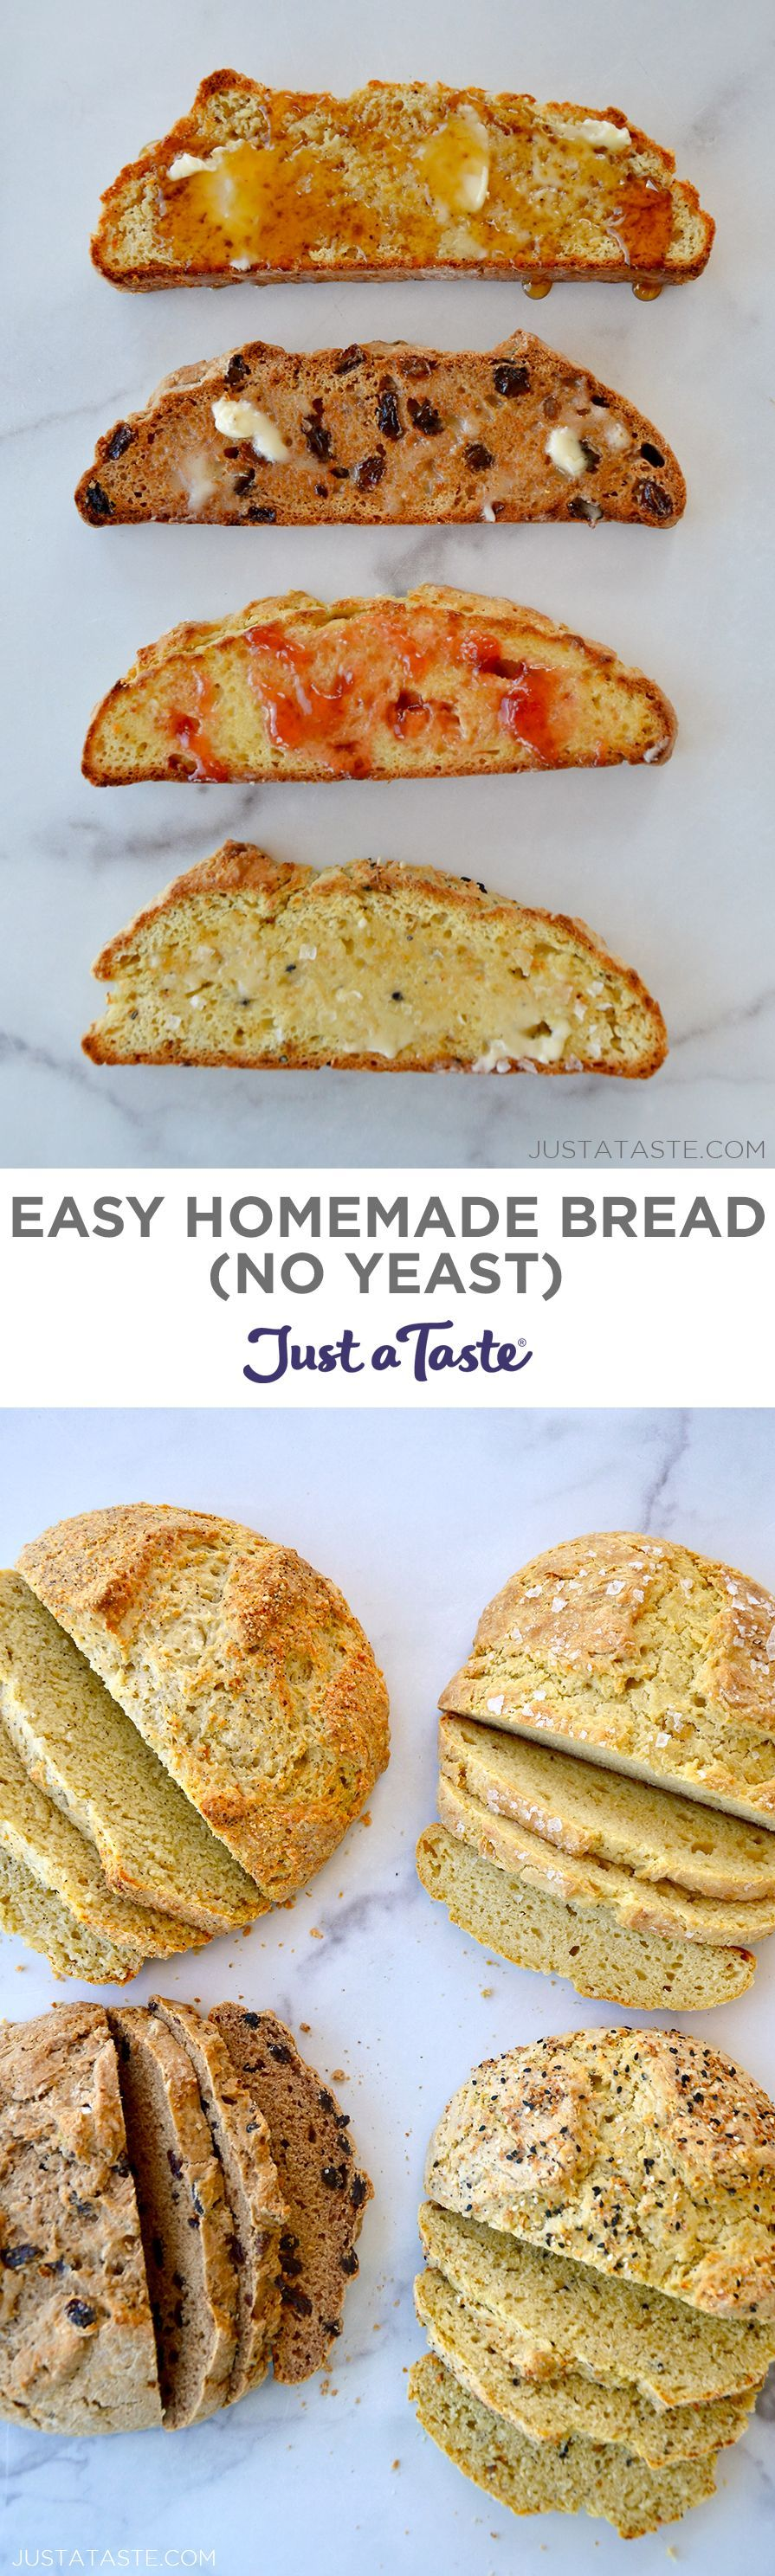 How to Make Homemade Bread Without Yeast in 2020 ...